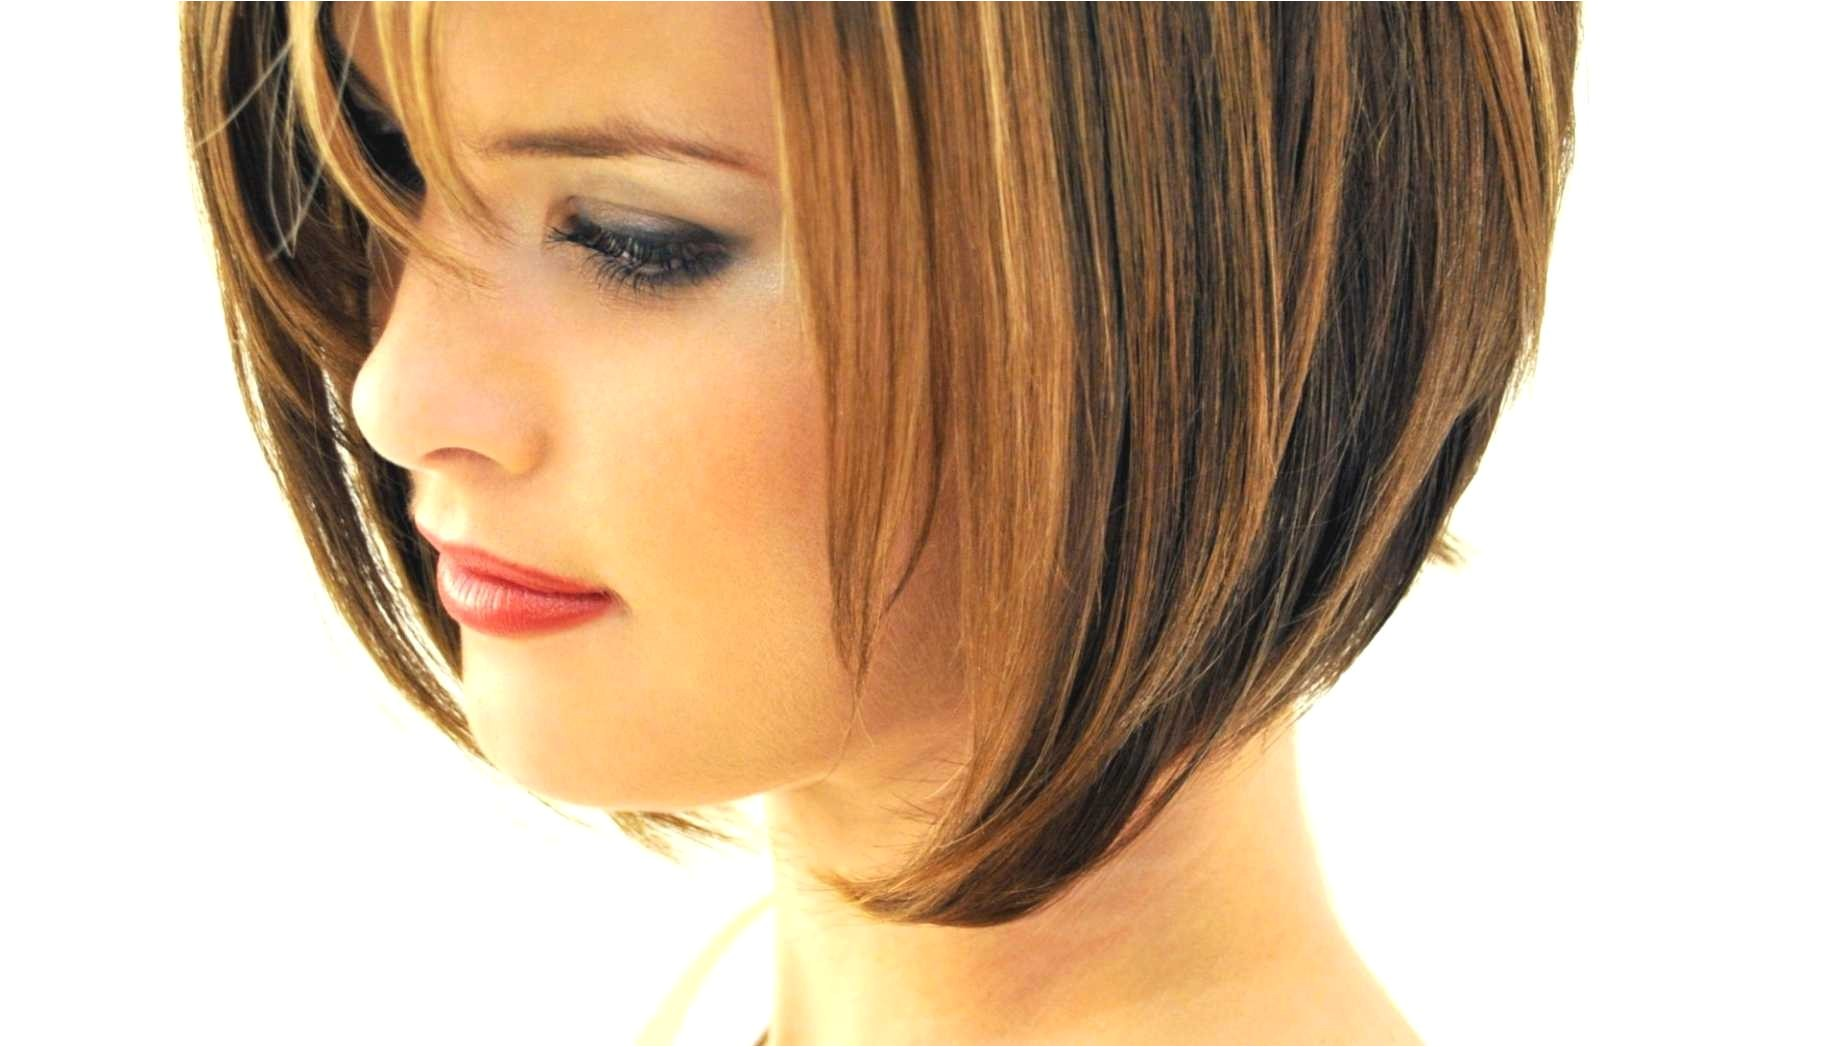 Short Hairstyles for Girls 2014 New Short Hairstyles 2014 S Lovely Bobs Hairstyle New Bob